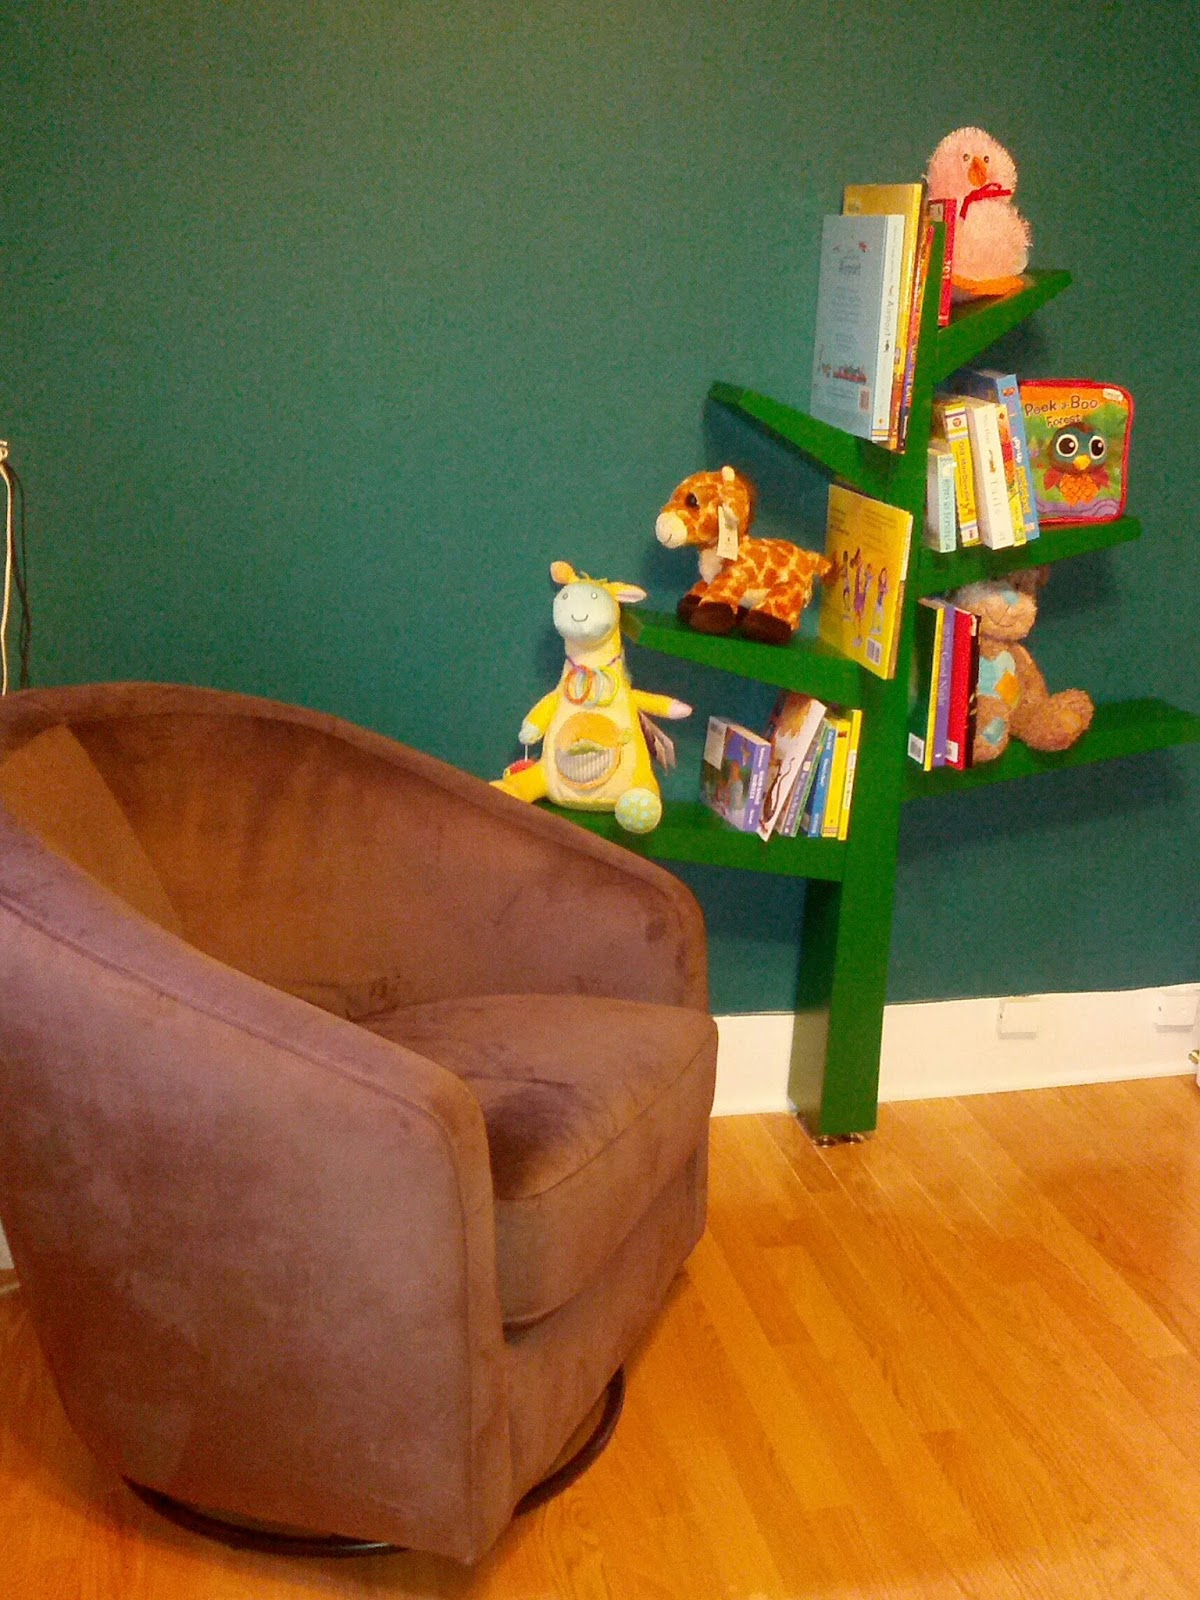 review of the babyletto bookshelf the book falls too far from the  - review of the babyletto bookshelf the book falls too far from the tree